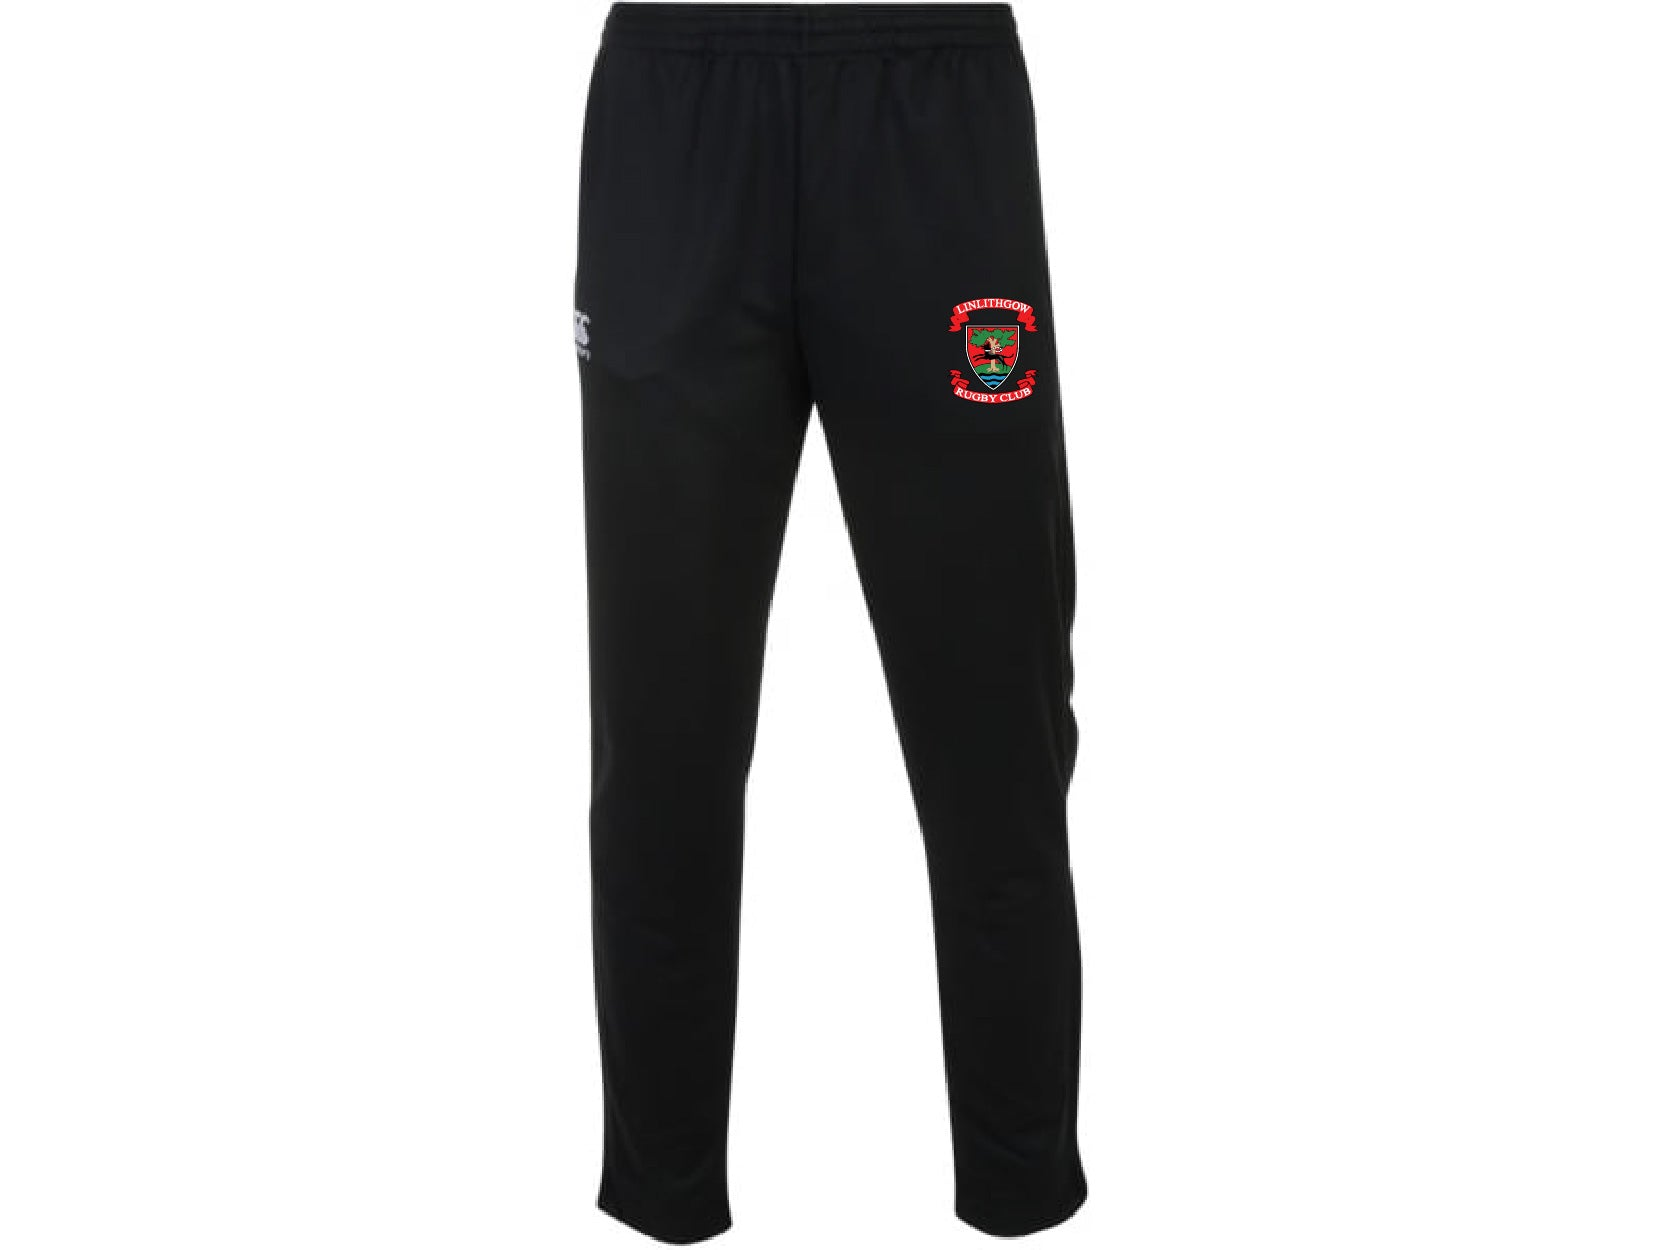 Linlithgow RFC CCC Stretch Tapered Pant Jnr